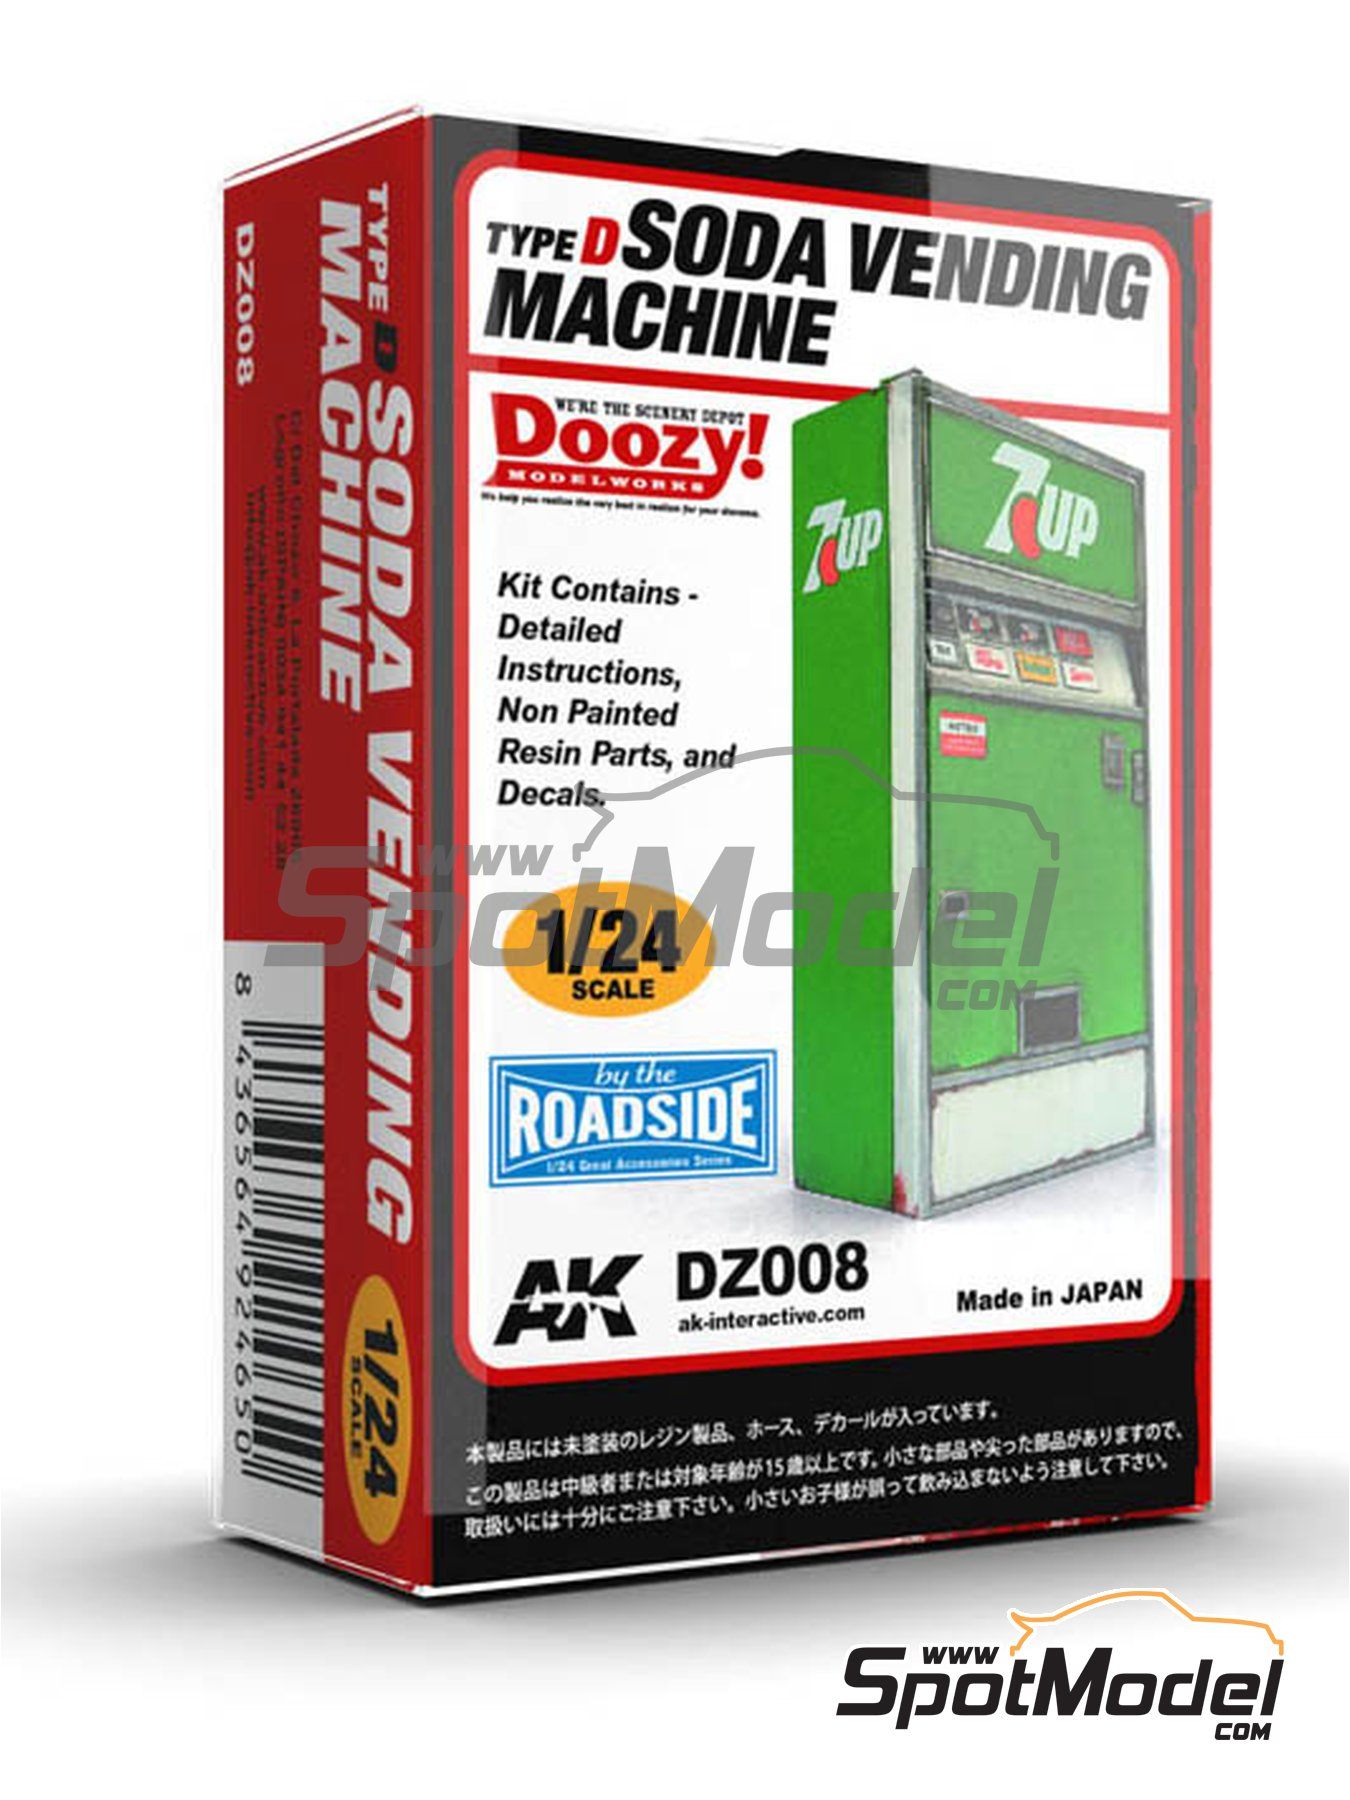 7UP soda vending machine - Type D | Model kit in 1/24 scale manufactured by Doozy Modelworks (ref.DZ008) image